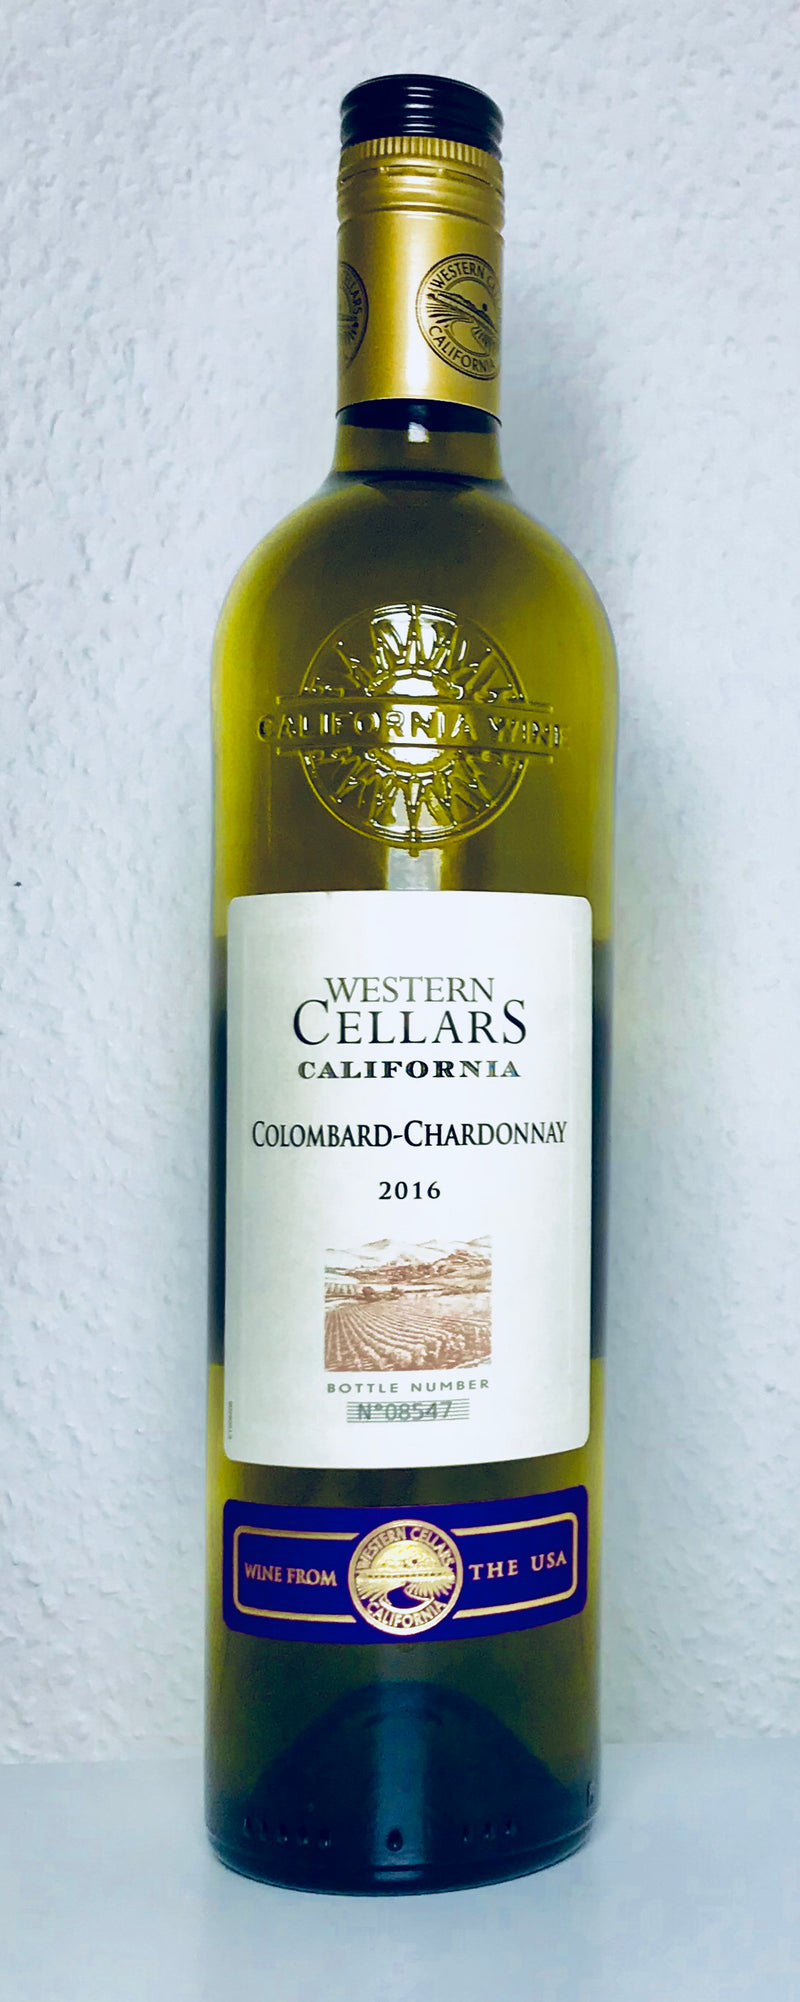 Western Cellars - Colombard-Chardonnay 12%, 75cl